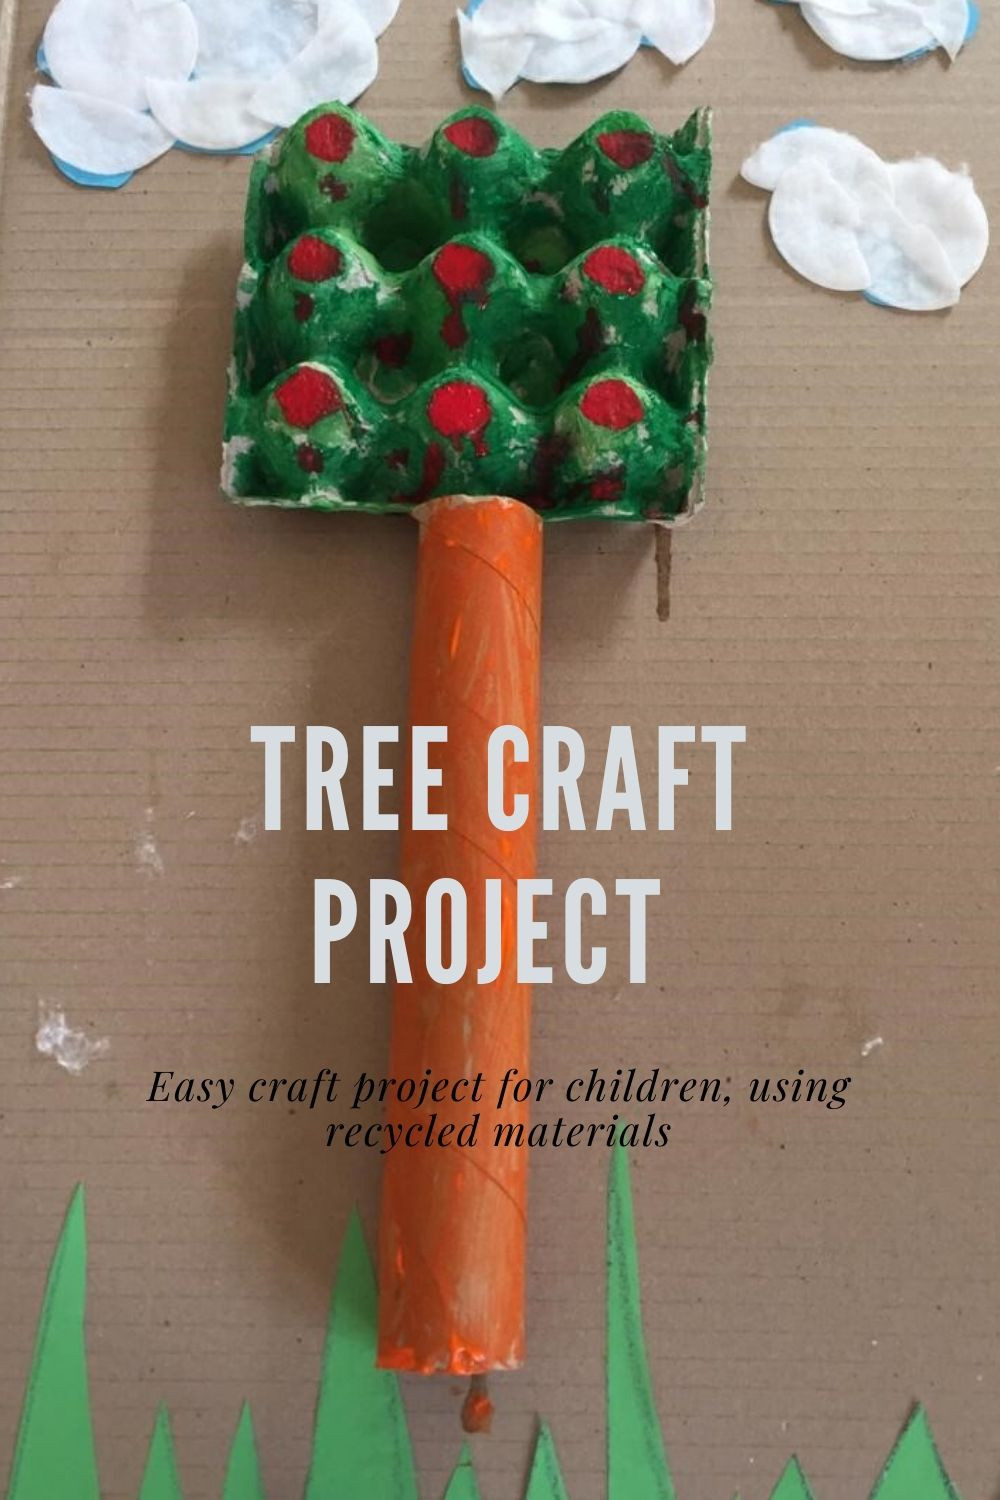 Easy DIY craft project for children using recyclable products from around the home. Make a tree craft on a budget.